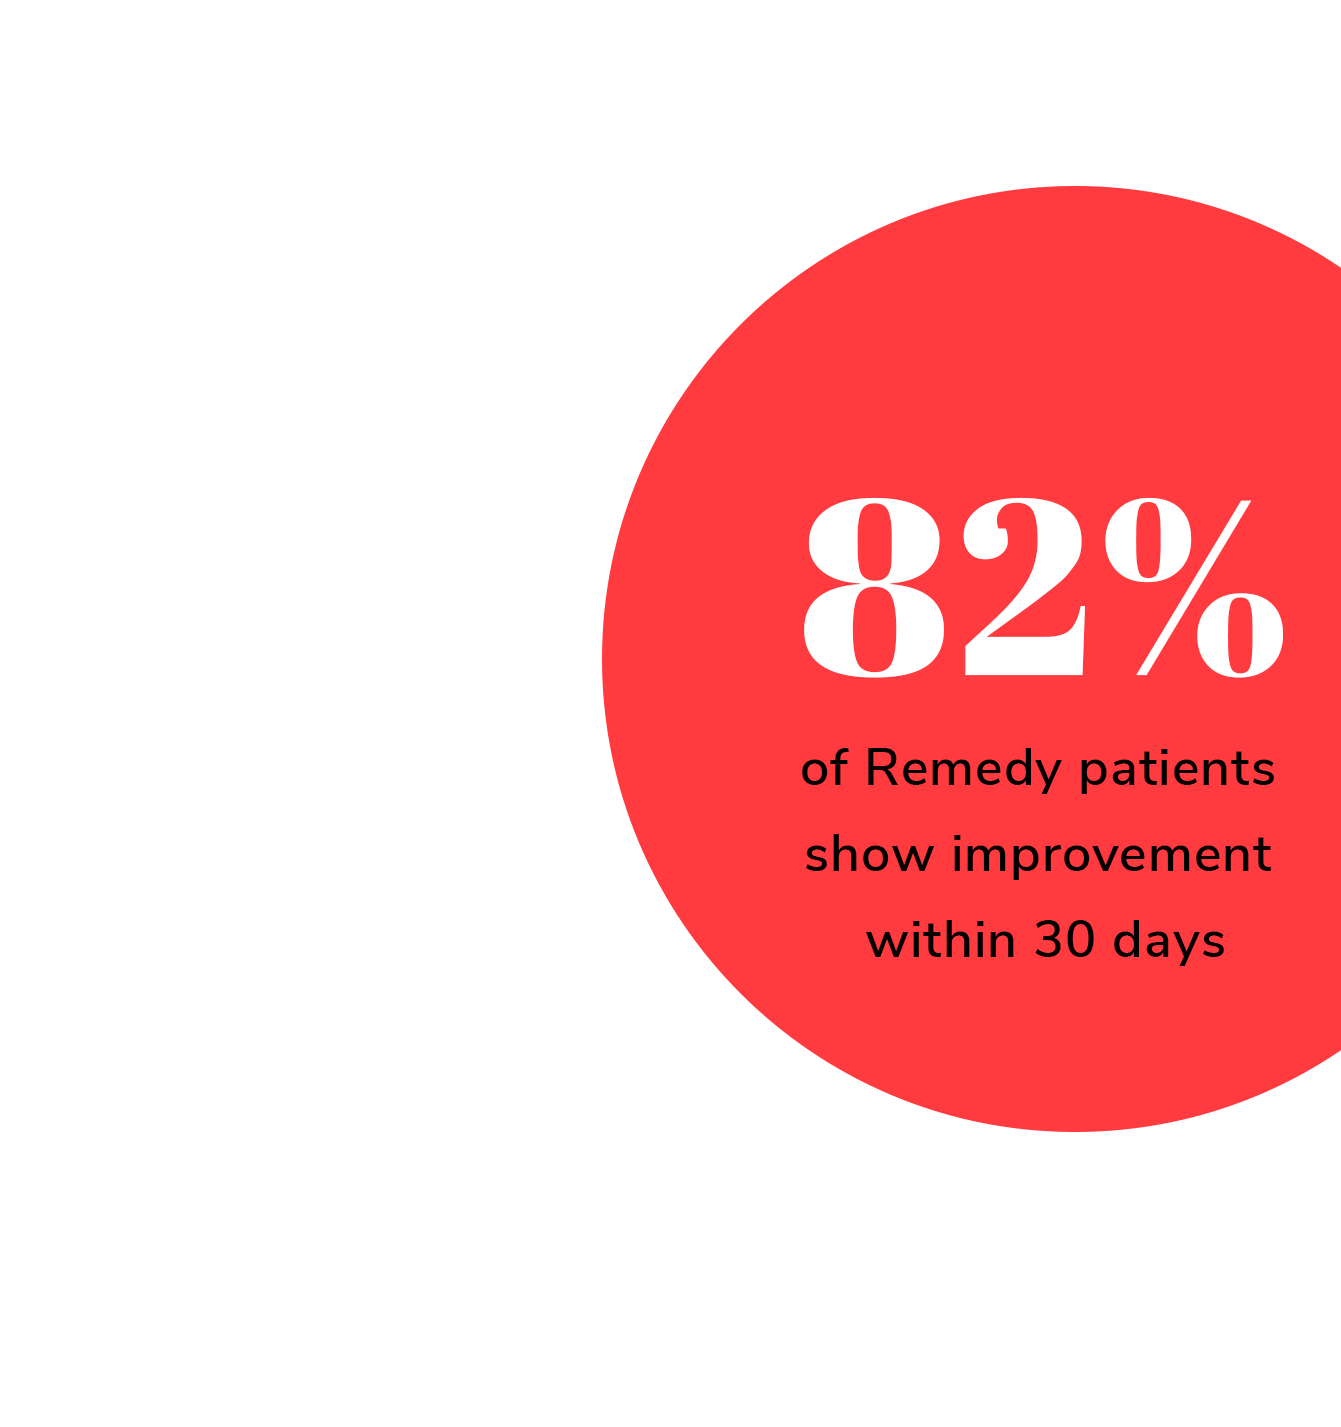 82% of remedy patients show improvement within 30 days